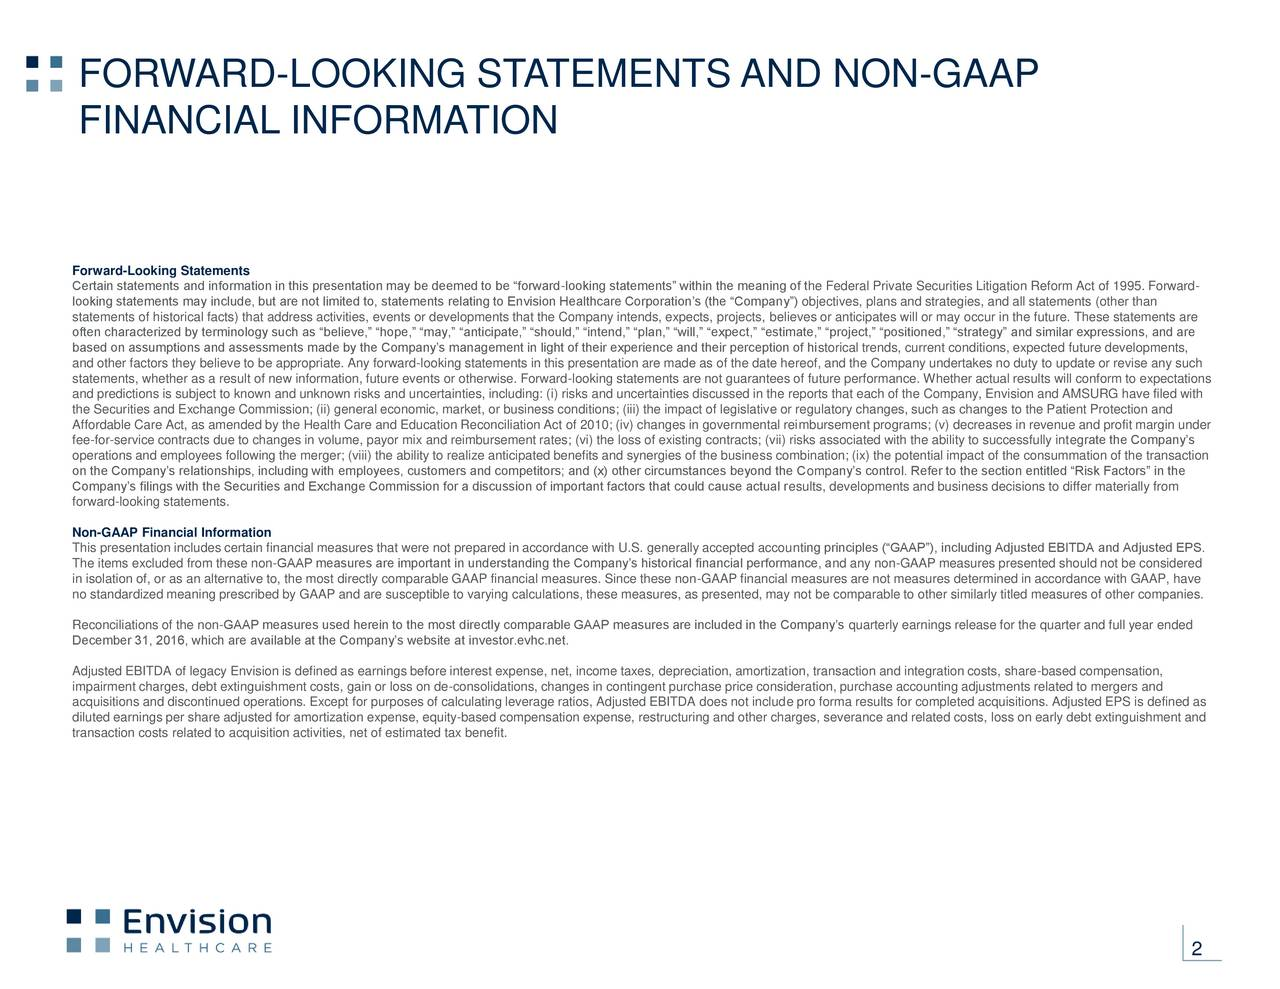 FINANCIAL INFORMATION Forward-Looking Statements Certain statements and information in this presentation may be deemed to be forward-looking statements within the meaning of the Federal Private Securities Litigation Reform Act of 1995. Forward- looking statements may include, but are not limited to, statements relating to Envision Healthcare Corporations (the Company) objectives, plans and strategies, and all statements (other than statements of historical facts) that address activities, events or developments that the Company intends, expects, projects, believes or anticipates will or may occur in the future. These statements are often characterized by terminology such as believe, hope, may, anticipate, should, intend, plan, will, expect, estimate, project, positioned, strategy and similar expressions, and are based on assumptions and assessments made by the Companys management in light of their experience and their perception of historical trends, current conditions, expected future developments, and other factors they believe to be appropriate. Any forward-looking statements in this presentation are made as of the date hereof, and the Company undertakes no duty to update or revise any such statements, whether as a result of new information, future events or otherwise. Forward-looking statements are not guarantees of future performance. Whether actual results will conform to expectations and predictions is subject to known and unknown risks and uncertainties, including: (i) risks and uncertainties discussed in the reports that each of the Company, Envision and AMSURG have filed with the Securities and Exchange Commission; (ii) general economic, market, or business conditions; (iii) the impact of legislative or regulatory changes, such as changes to the Patient Protection and Affordable Care Act, as amended by the Health Care and Education Reconciliation Act of 2010; (iv) changes in governmental reimbursement programs; (v) decreases in revenue and profit margin und